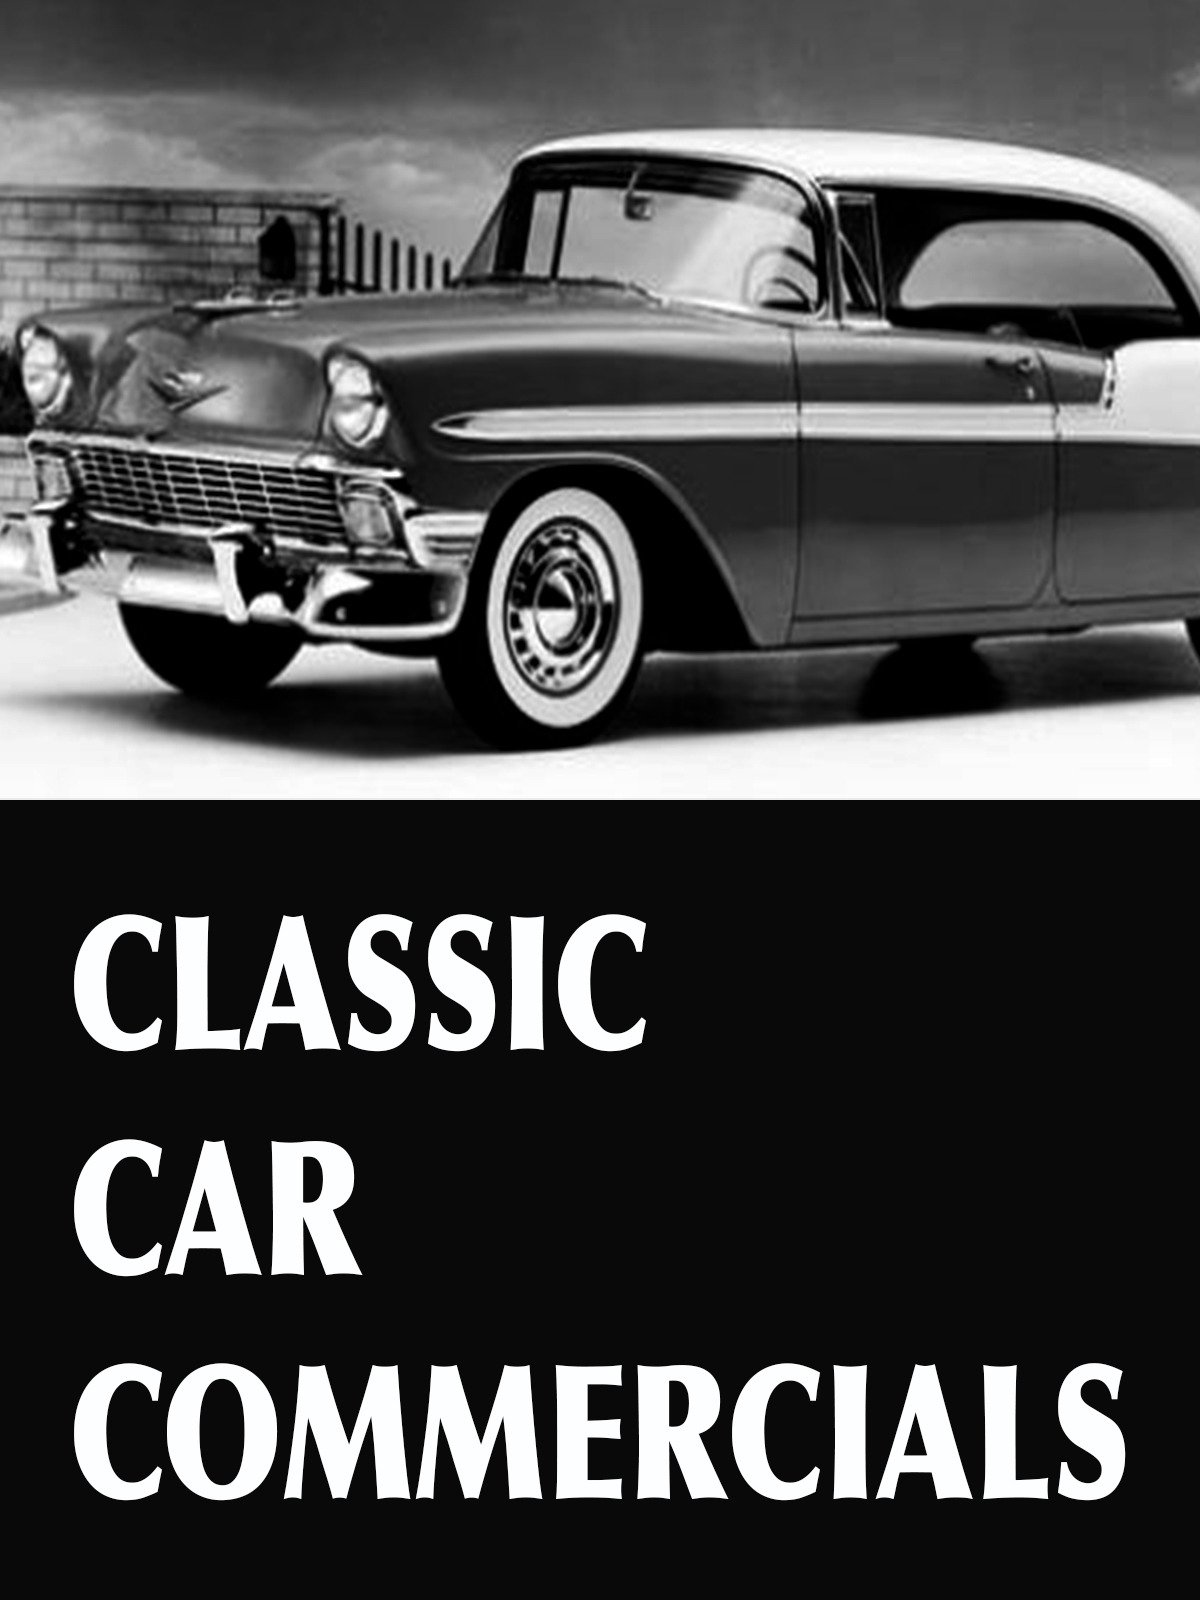 Classic Car Commercials